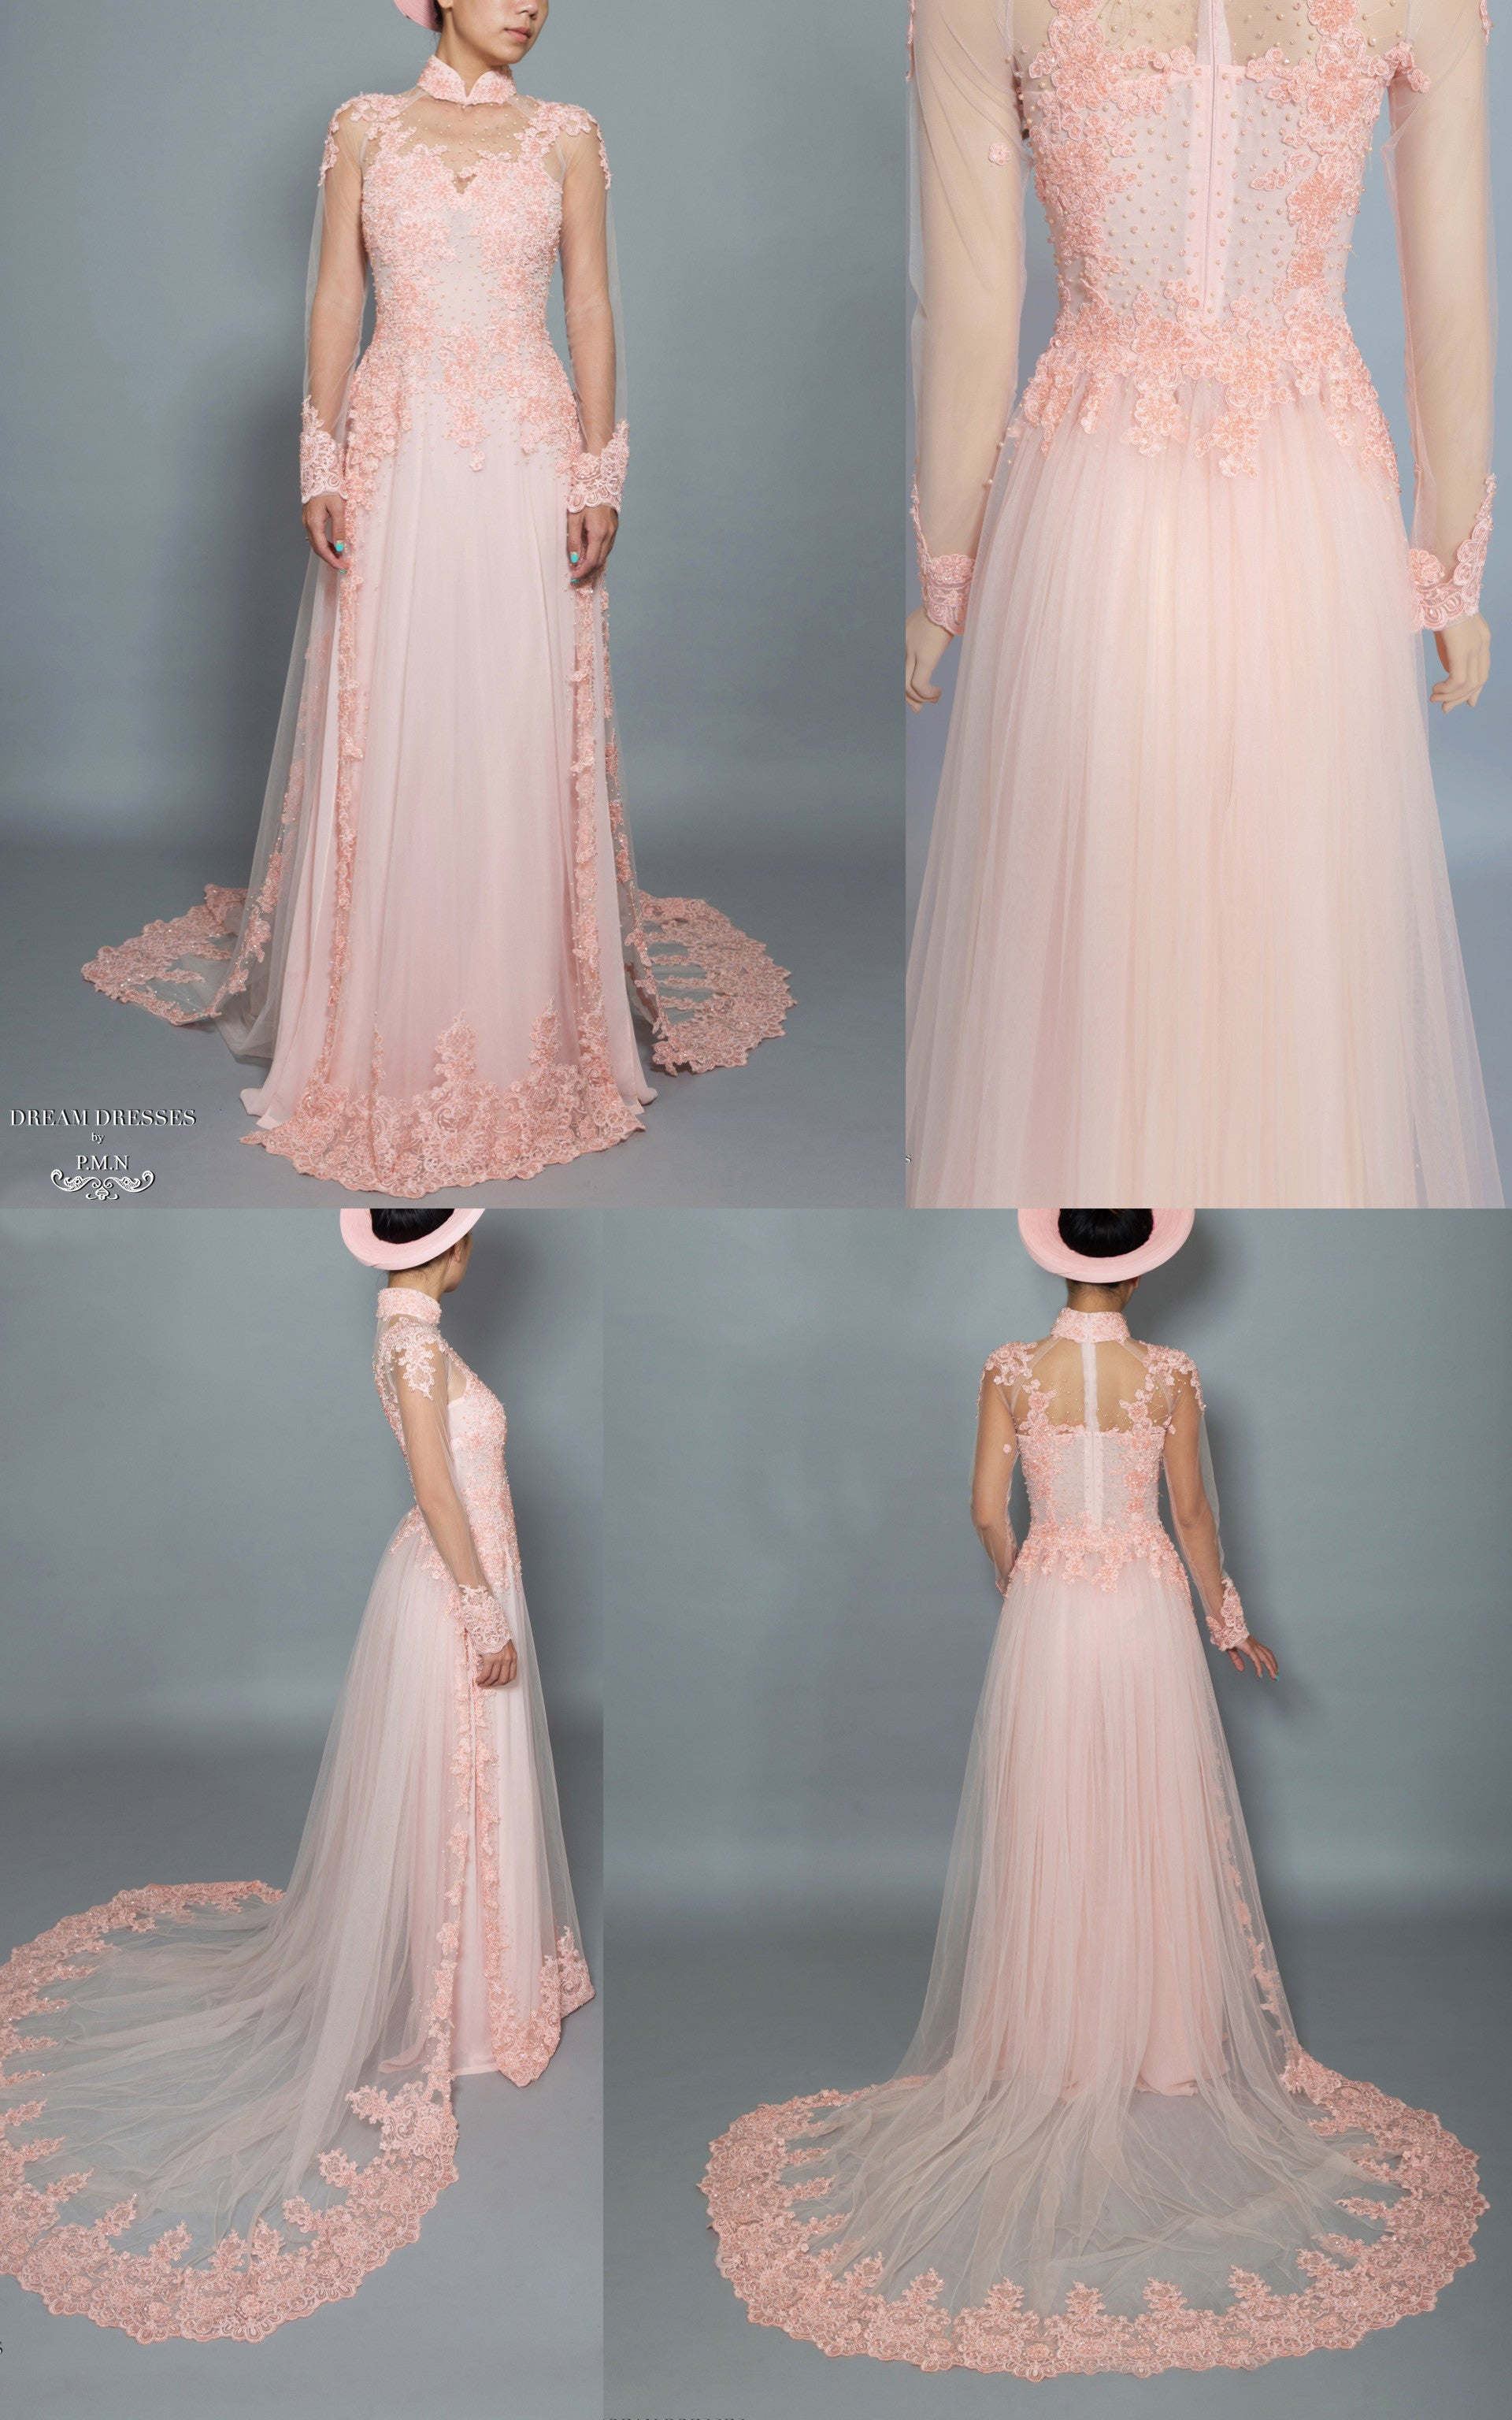 Blush Ao Dai | Vietnamese Bridal Dress with Embellishment (#TALA)